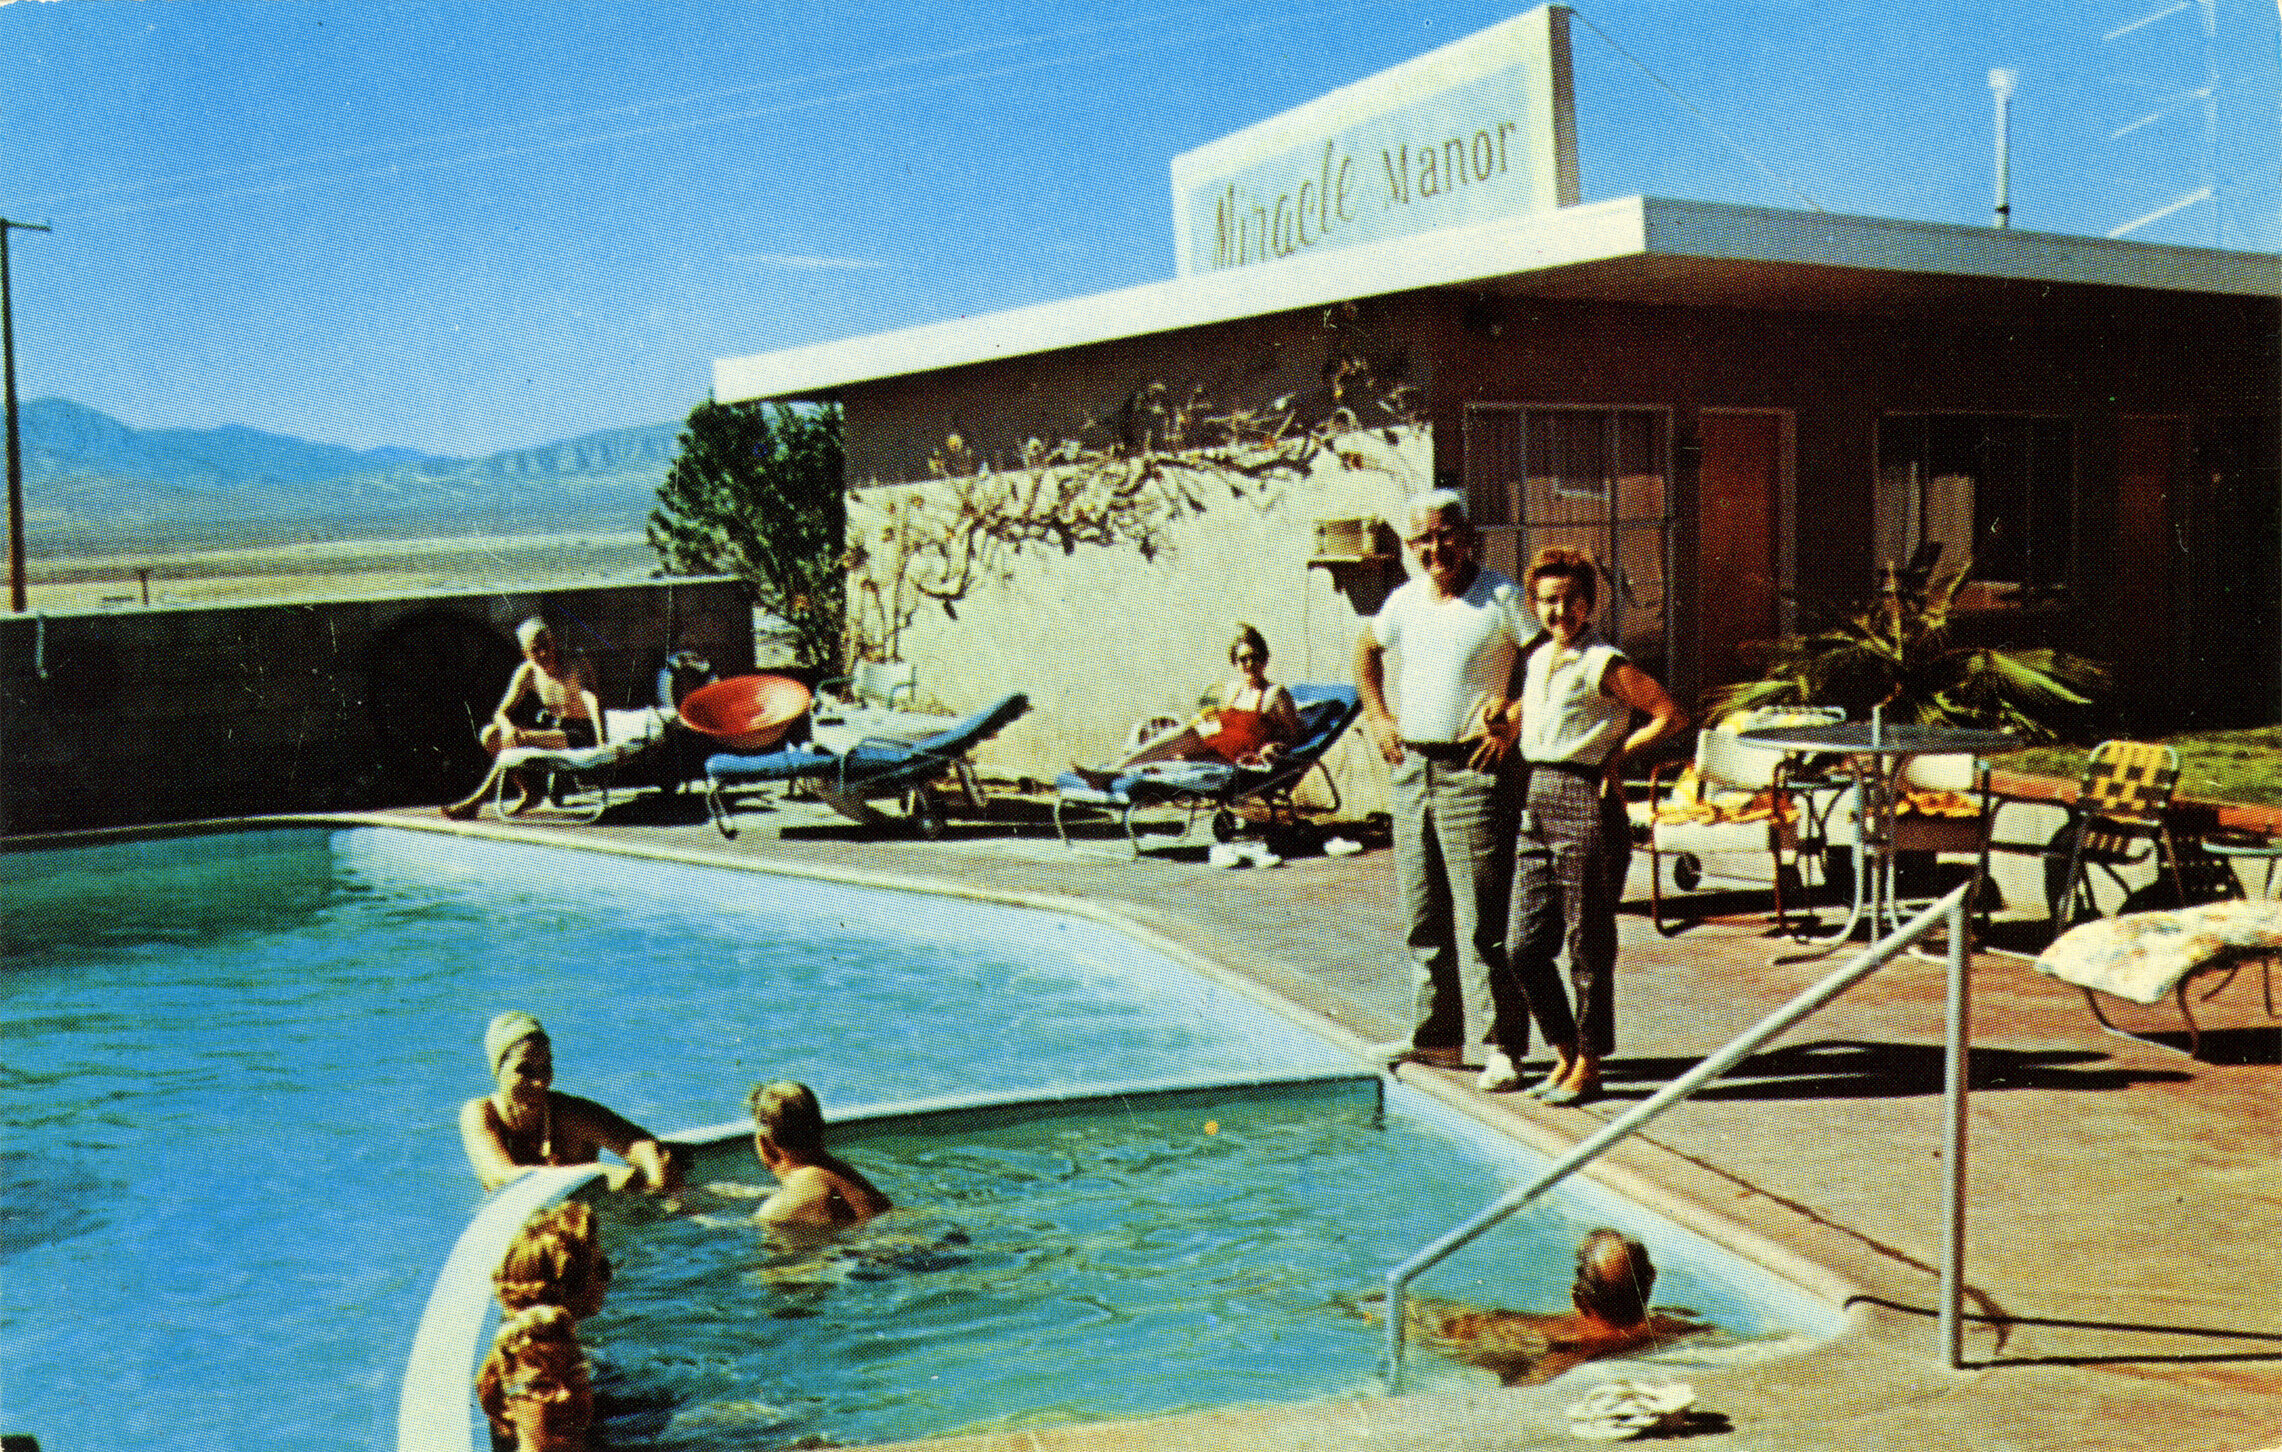 History - The original hotel was built in 1949, one of the first spas in Desert Hot Springs. Now, redesigned as a human-centered, luxury resort, we boast true exclusivity situated in the Coachella Valley on top of Miracle Hill and nestled between the San Jacinto and San Bernardino mountain ranges.